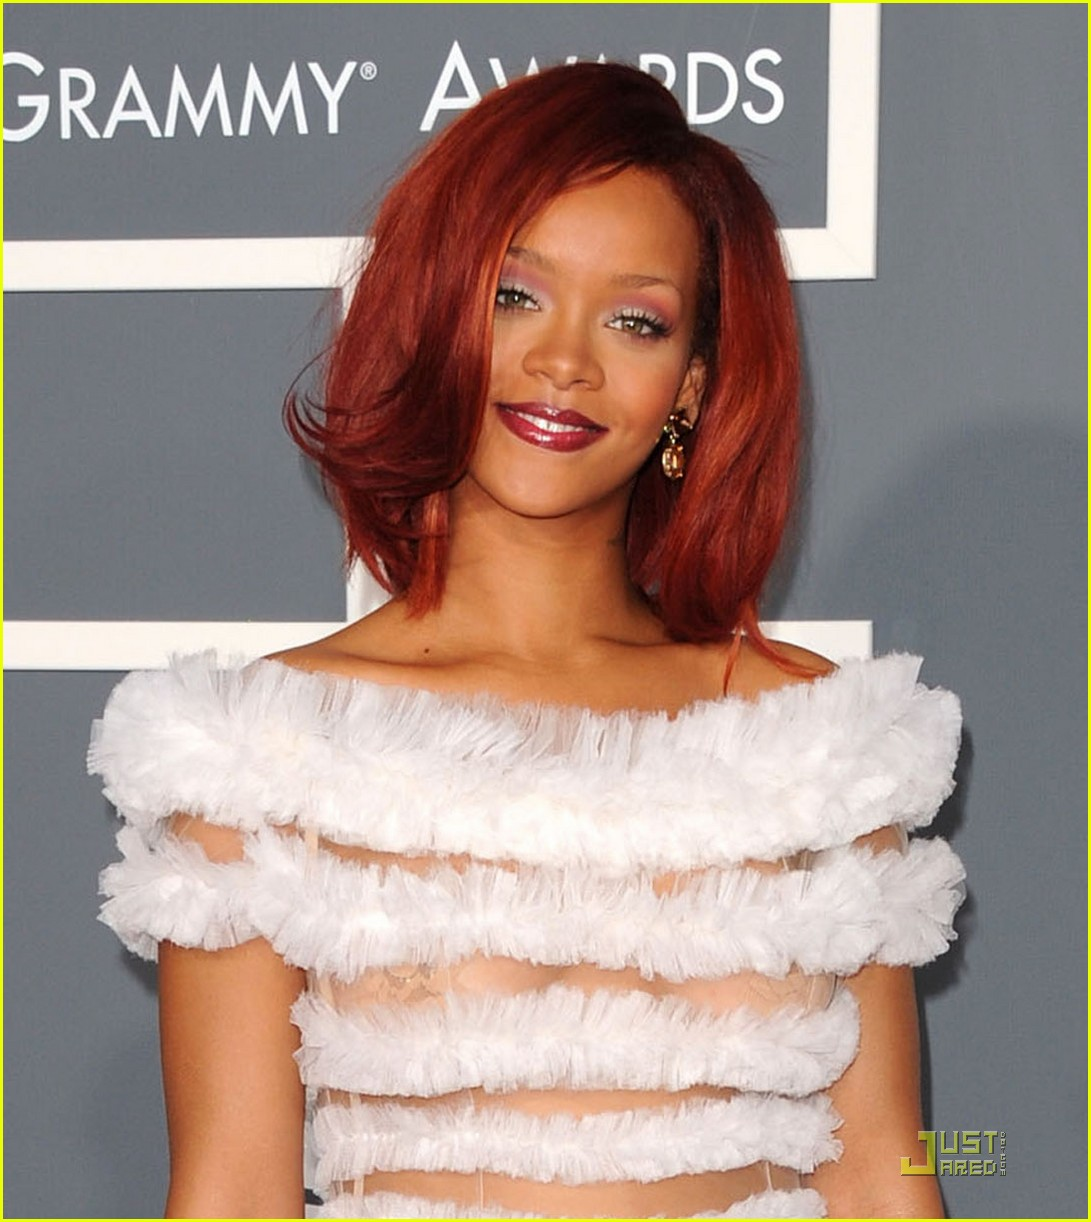 Rihanna Grammys 2011 Let's Not Get Carried Away